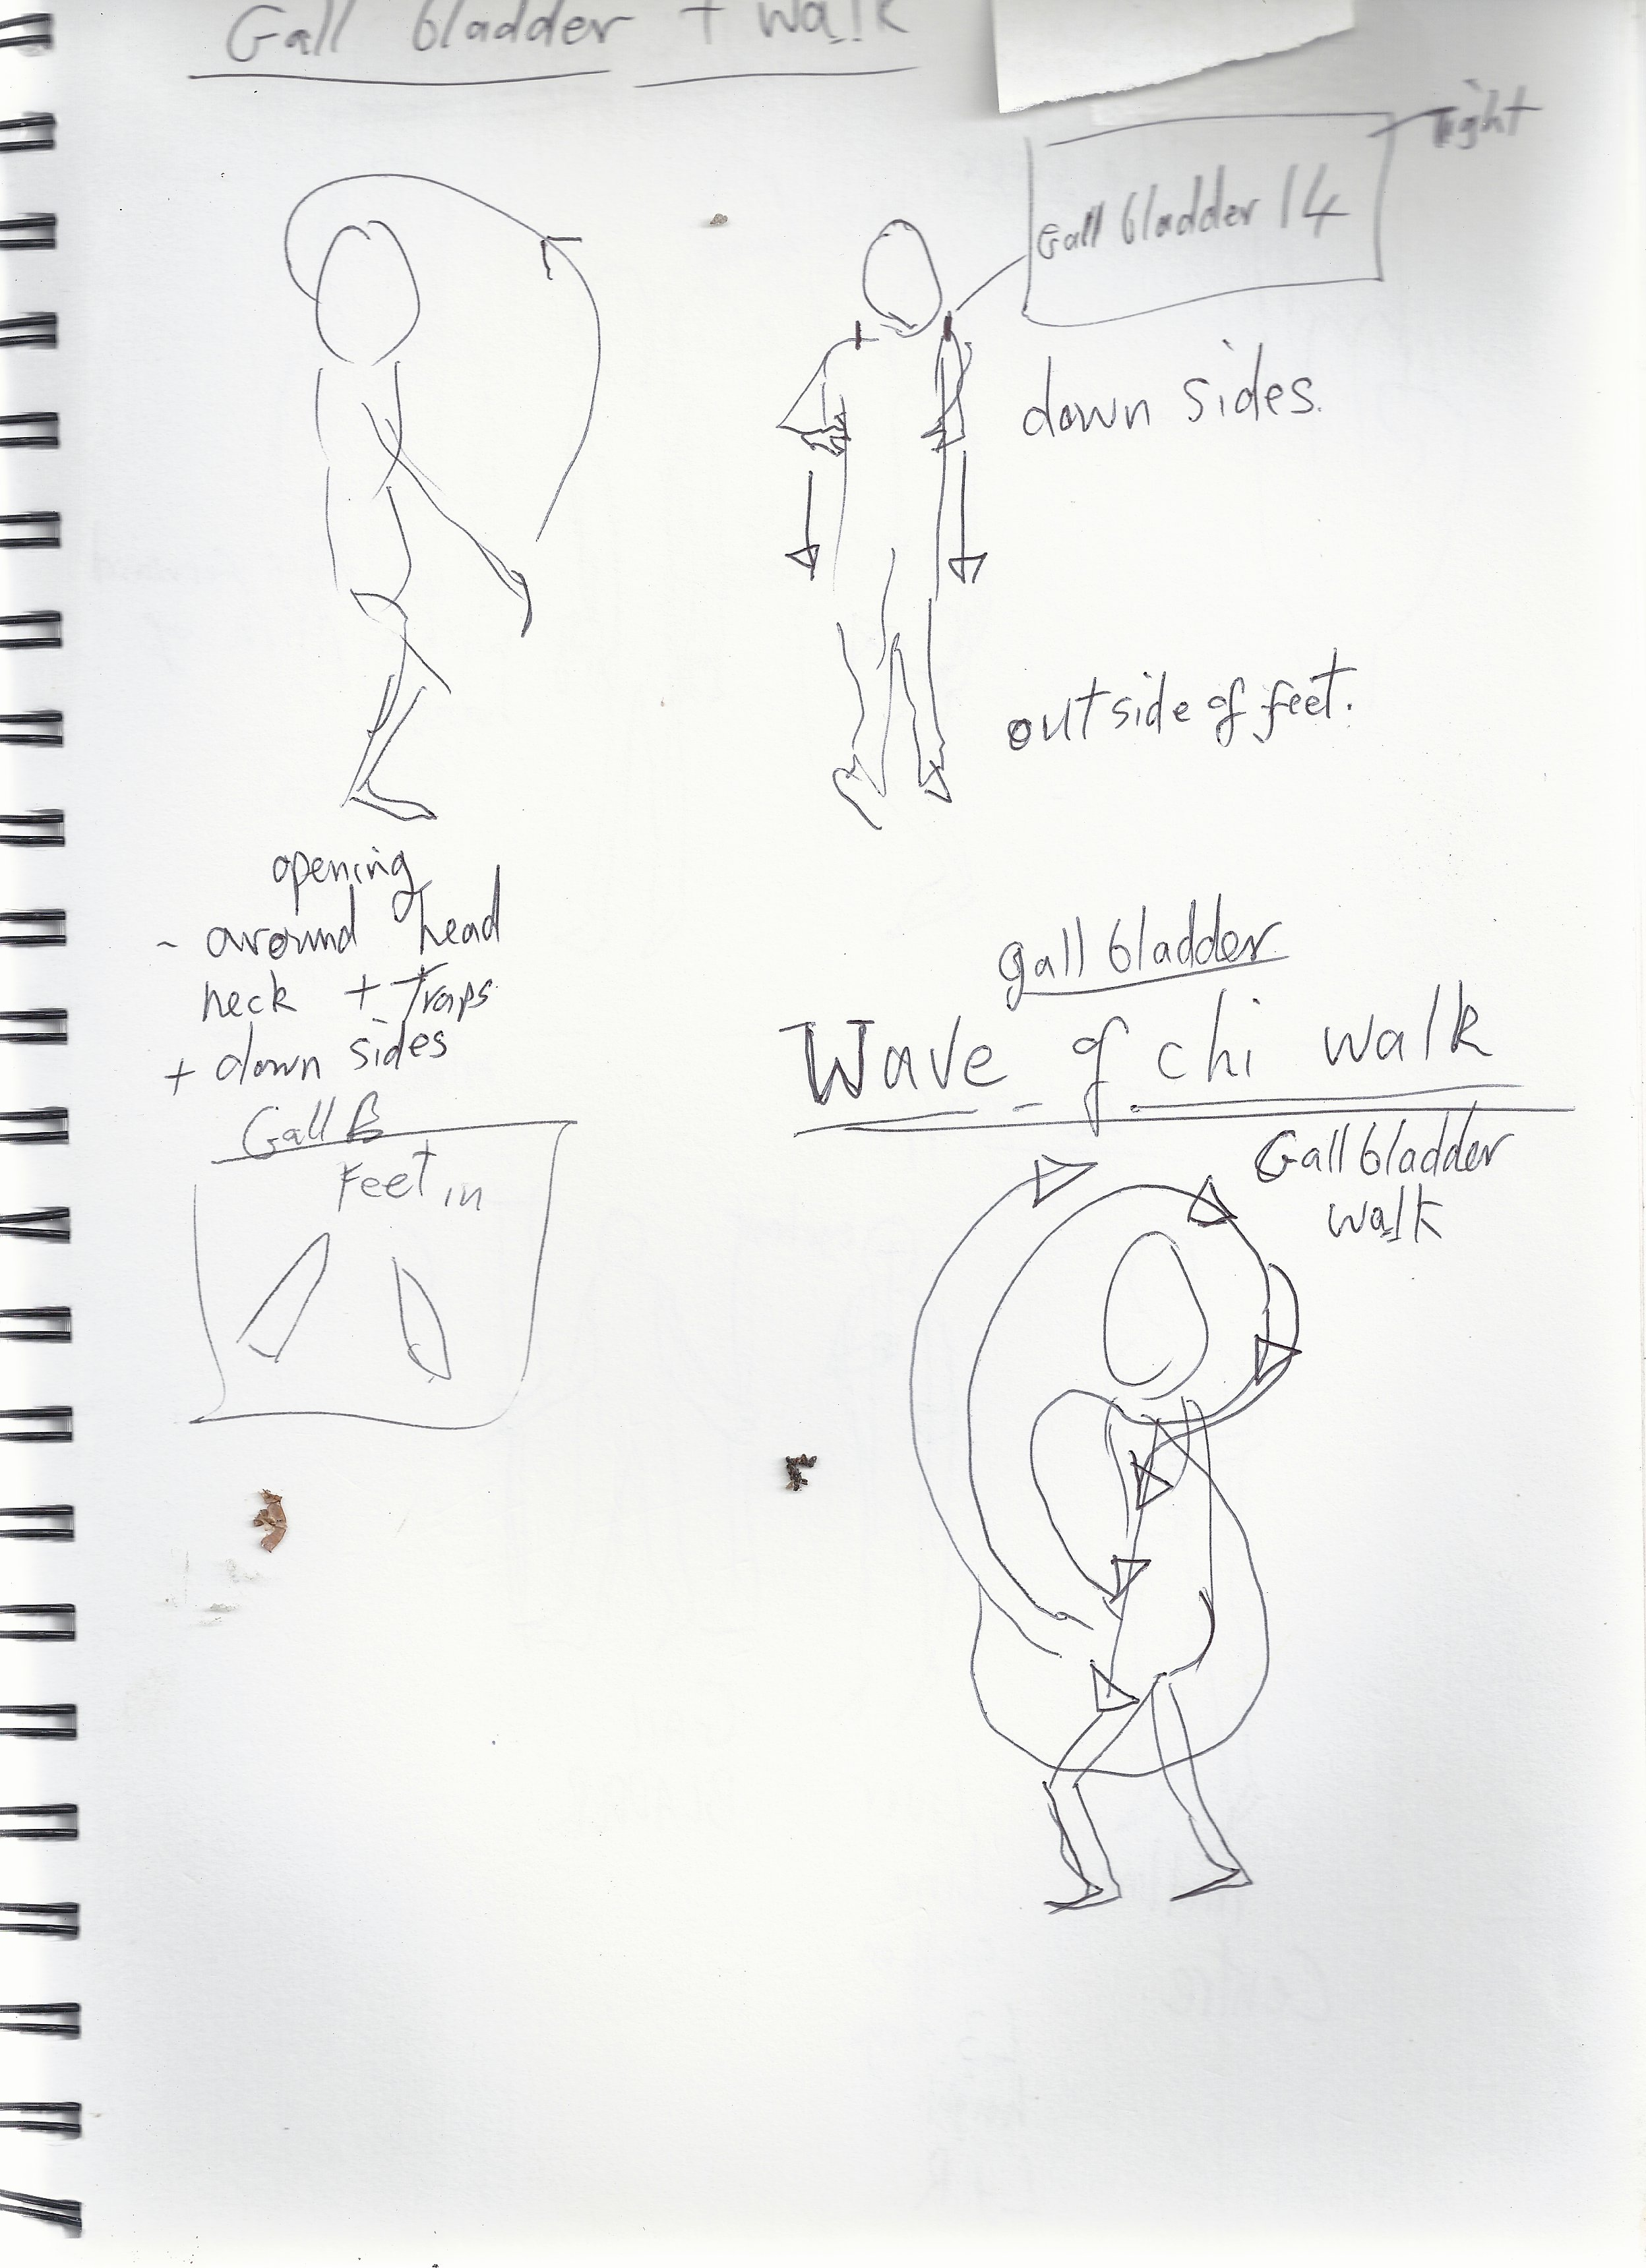 Chi Gung Exercise Notes 0349.JPG